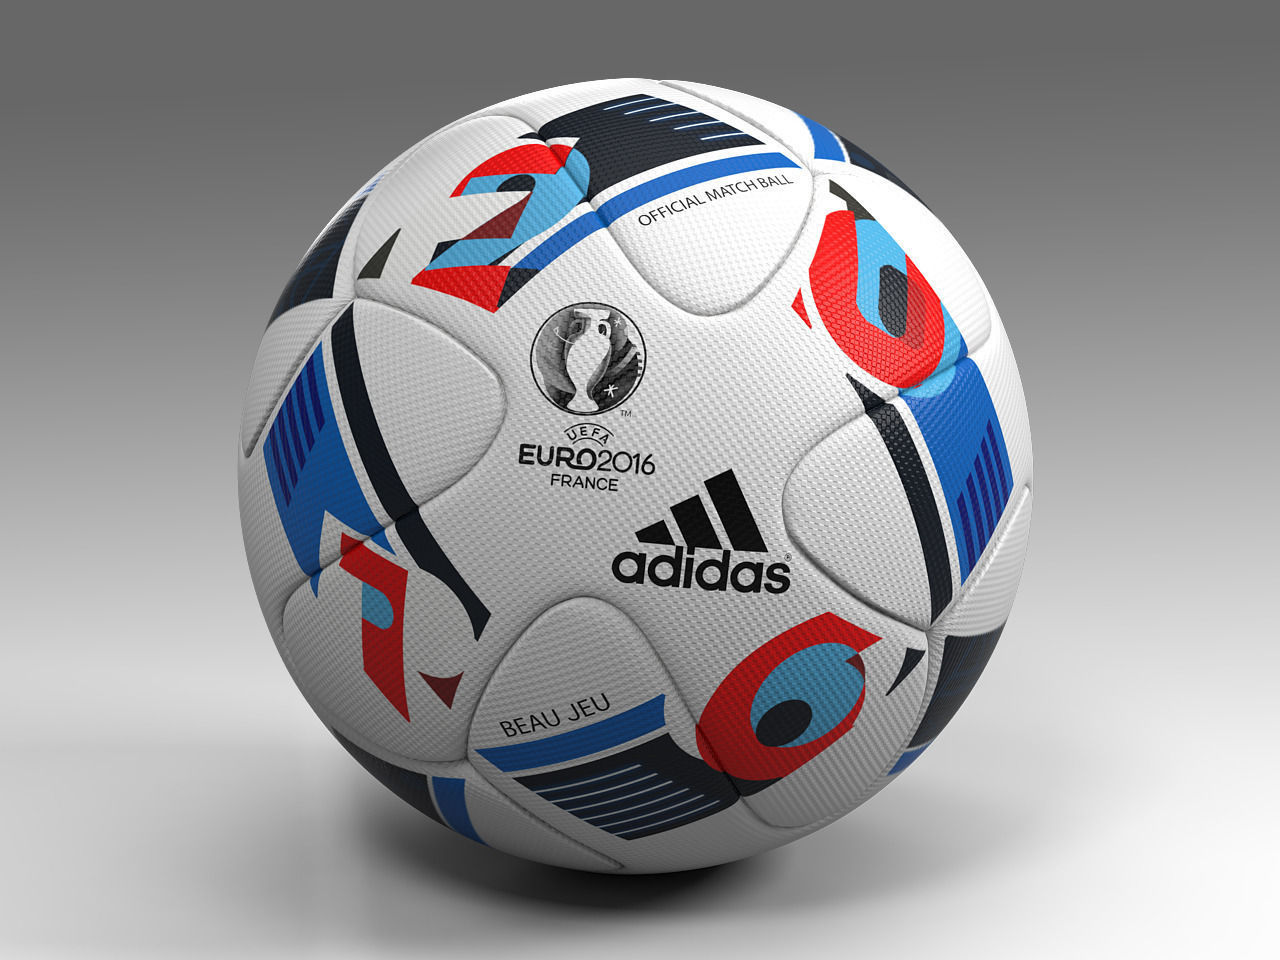 3d model euro 2016 adidas beau jeu official ball uefa vr. Black Bedroom Furniture Sets. Home Design Ideas